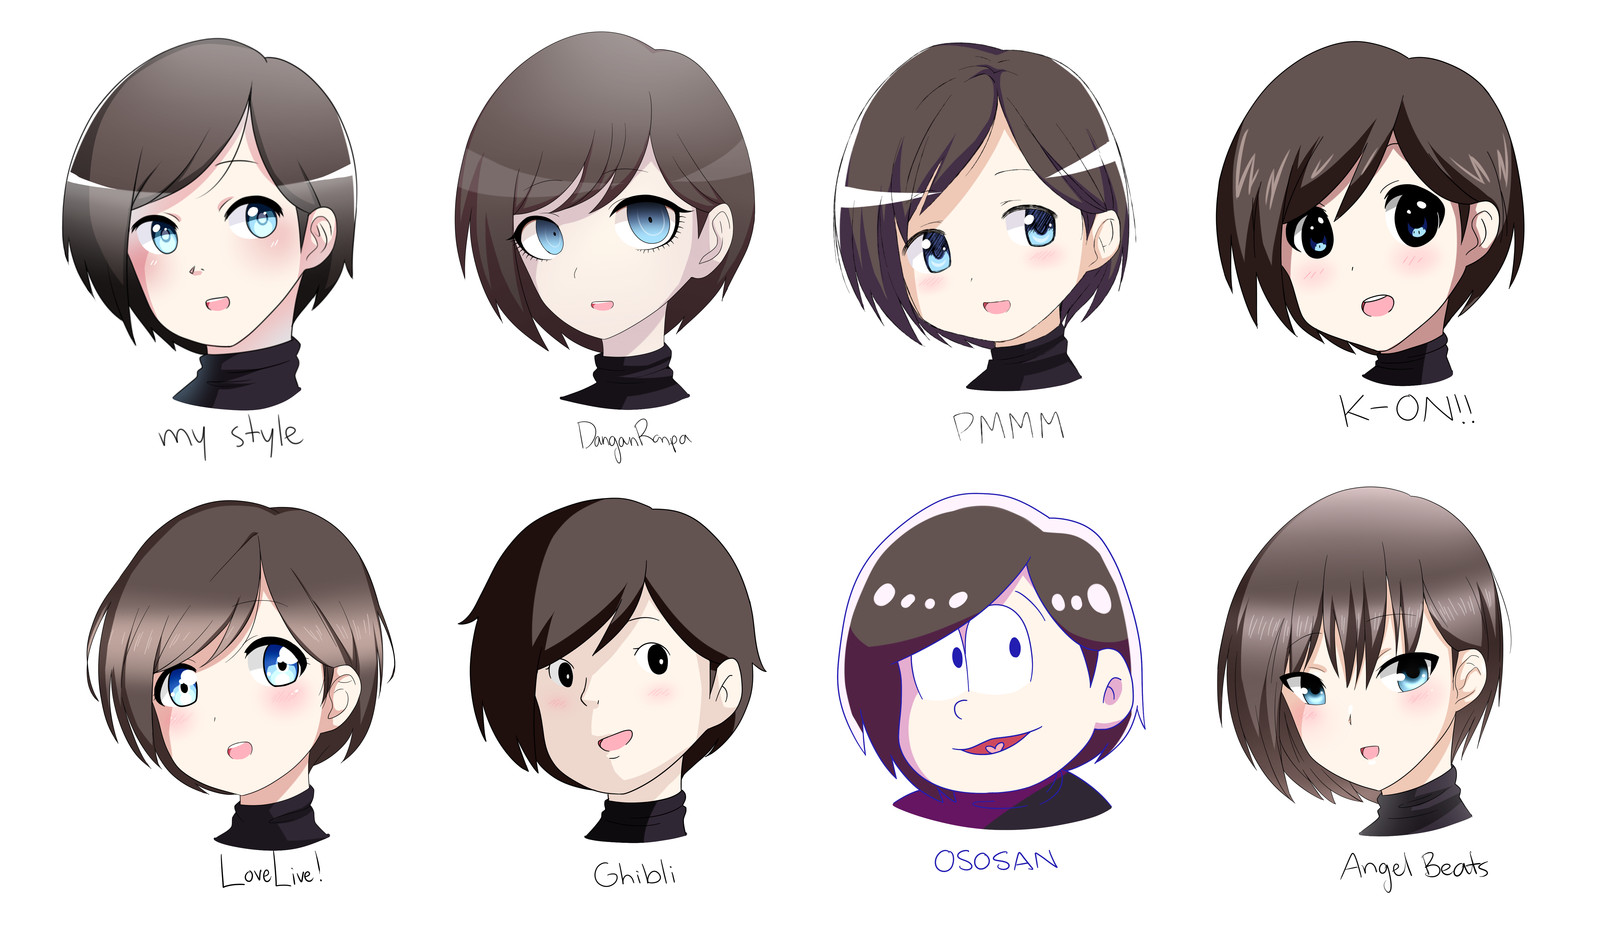 Best ideas about Anime Style Haircuts . Save or Pin Style Challenge 8 Different Anime Styles by karuuko on Now.